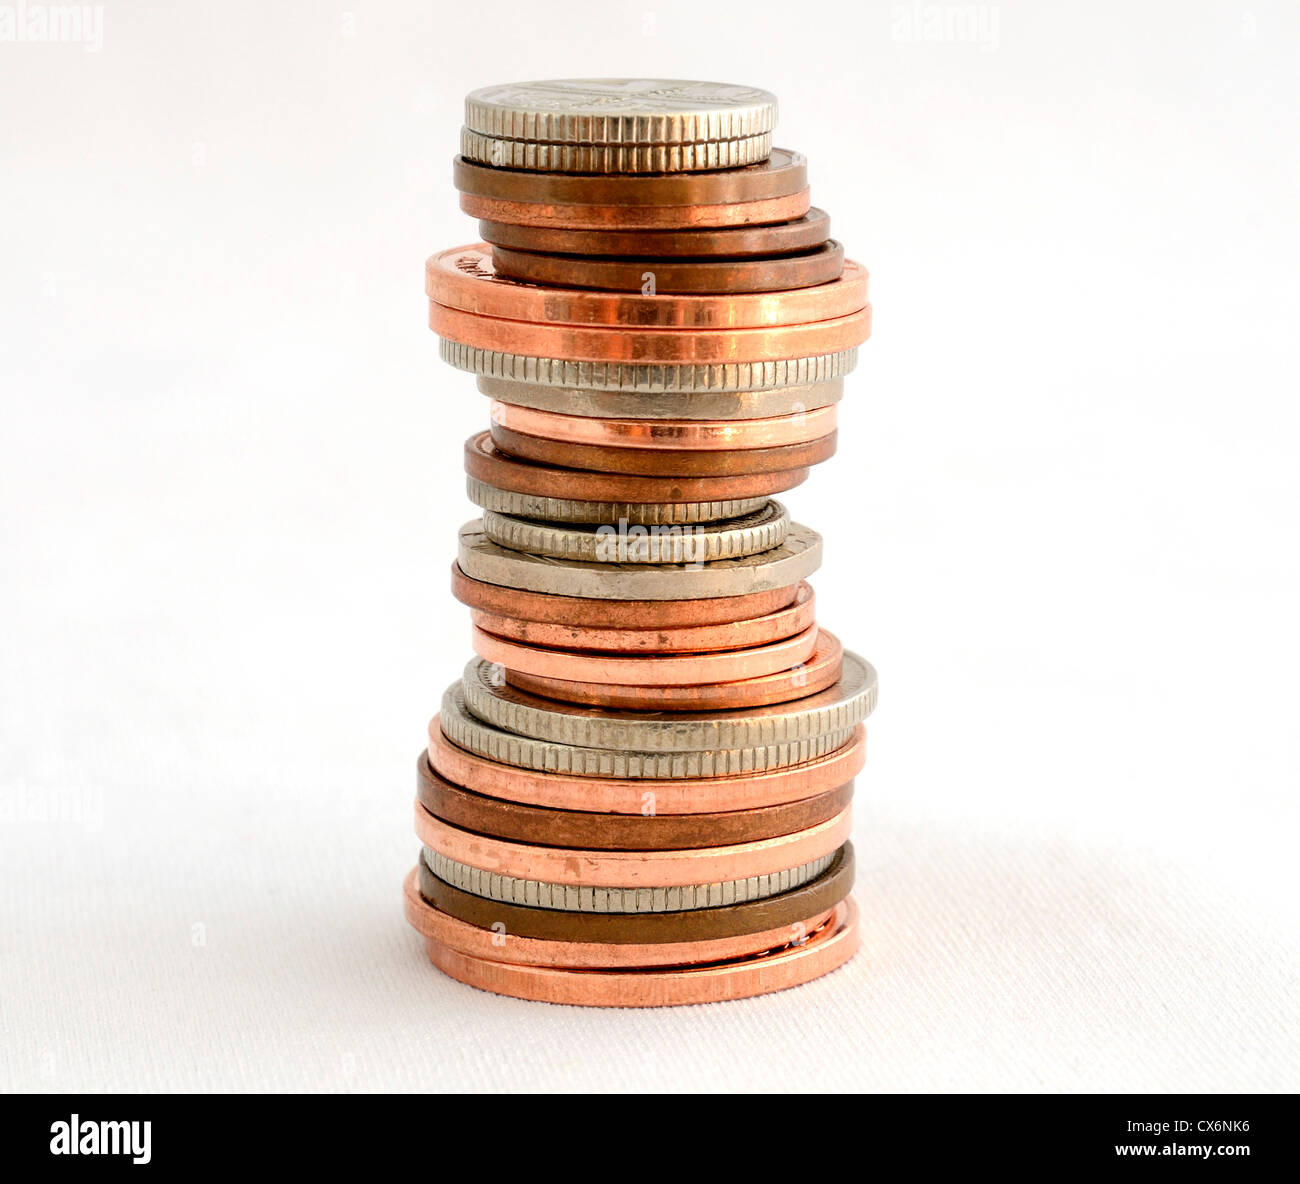 a stack of british coins - Stock Image